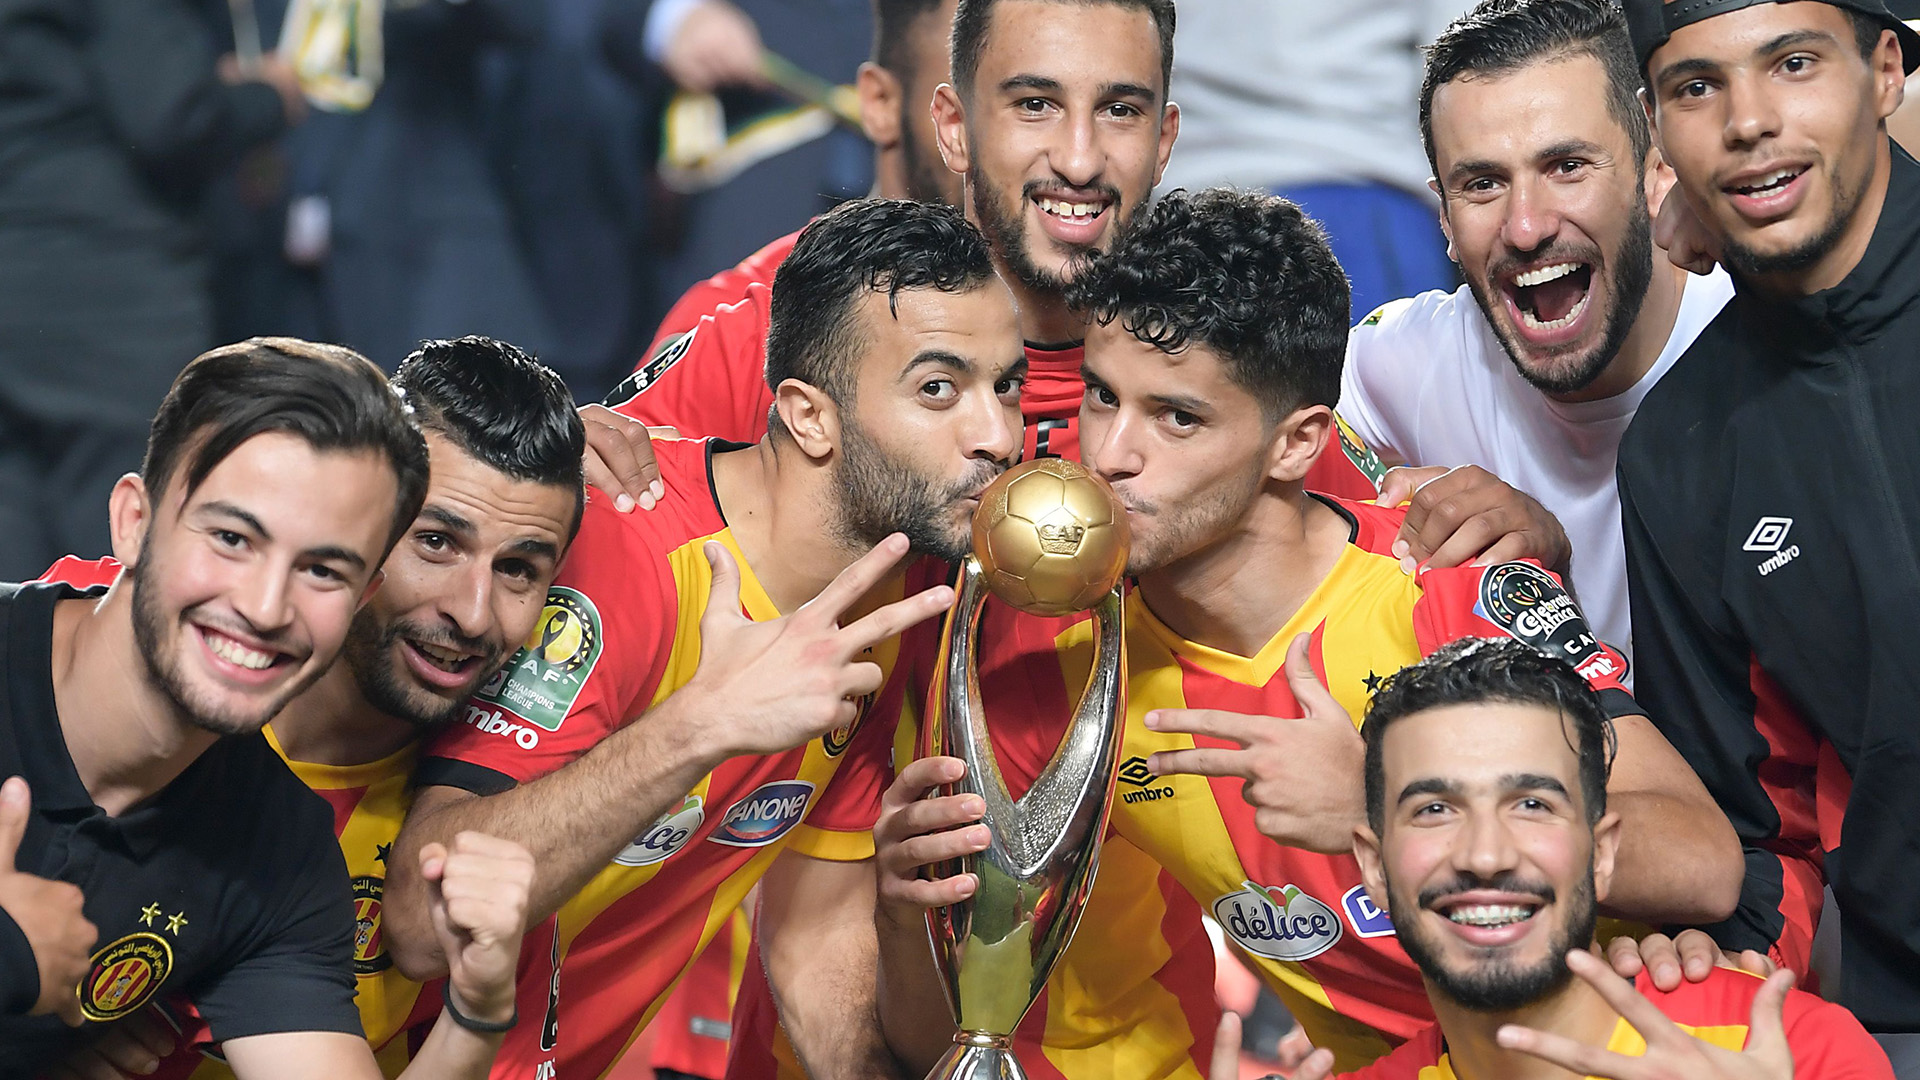 Esperance had initially won the title in May. (PHOTOS/Courtesy)